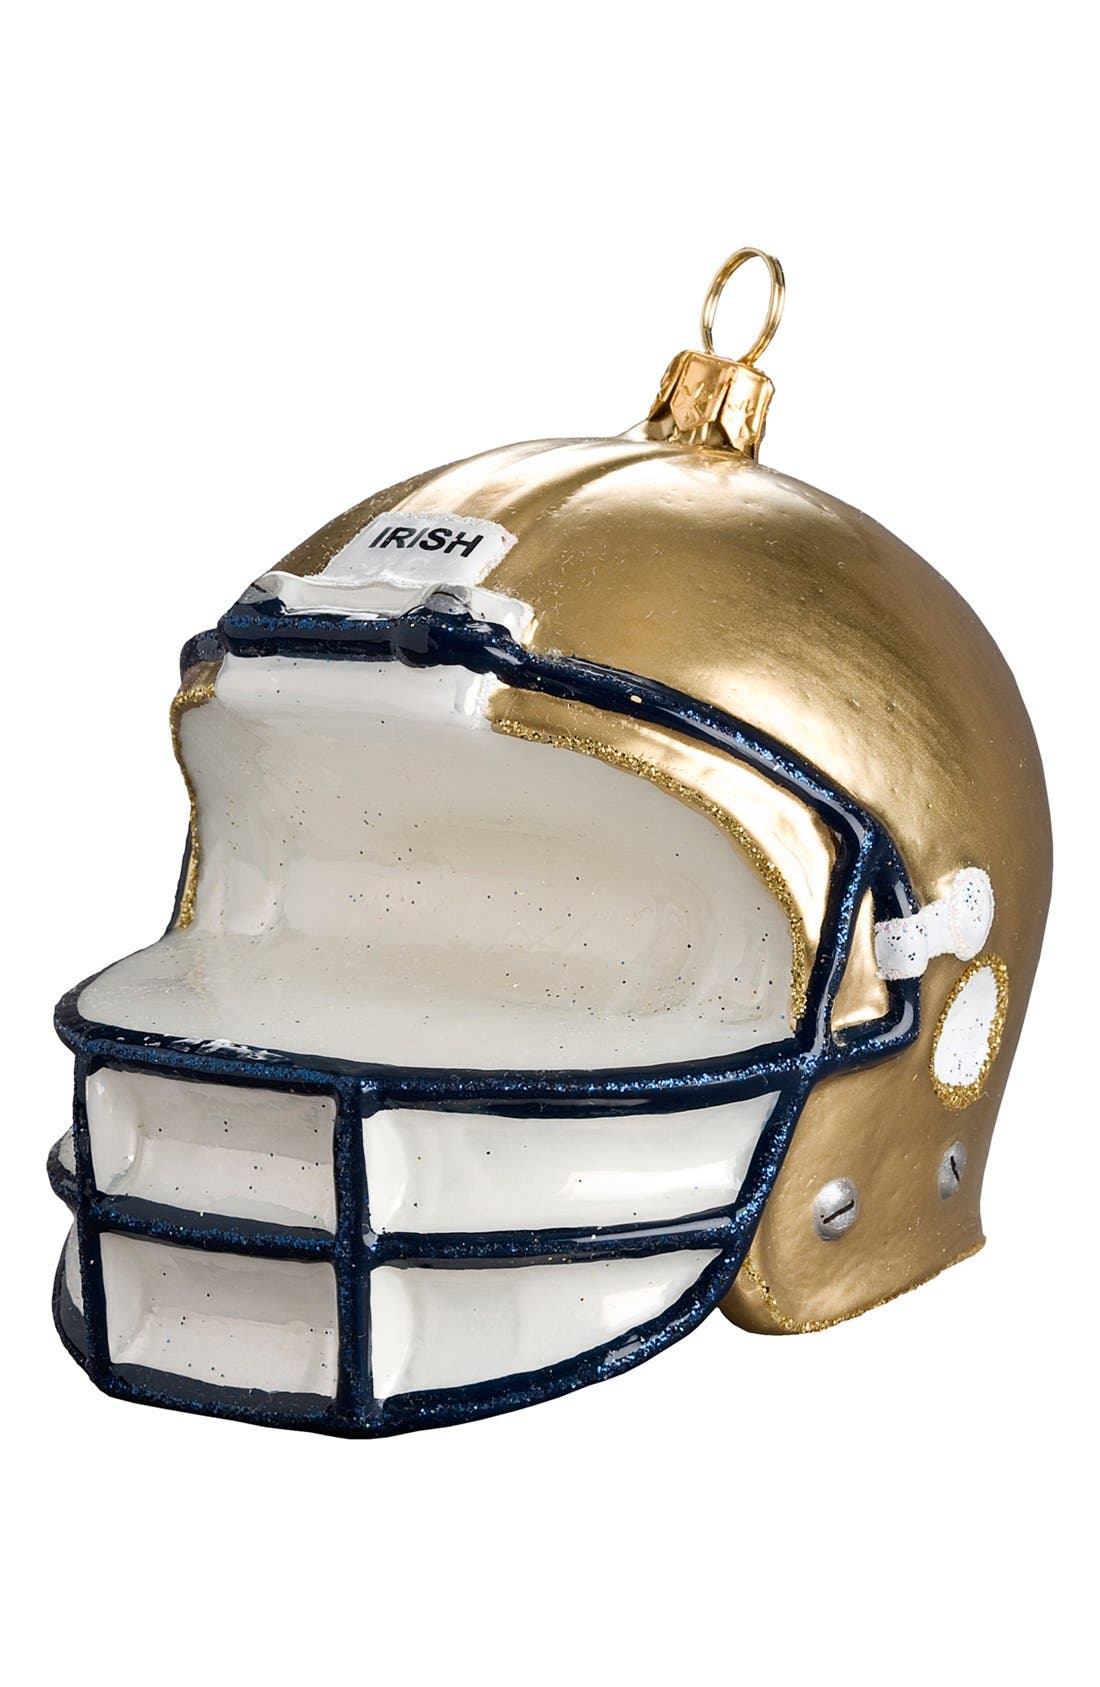 Alternate Image 1 Selected - Joy to the World Collectibles 'Collegiate Helmet - Notre Dame' Ornament